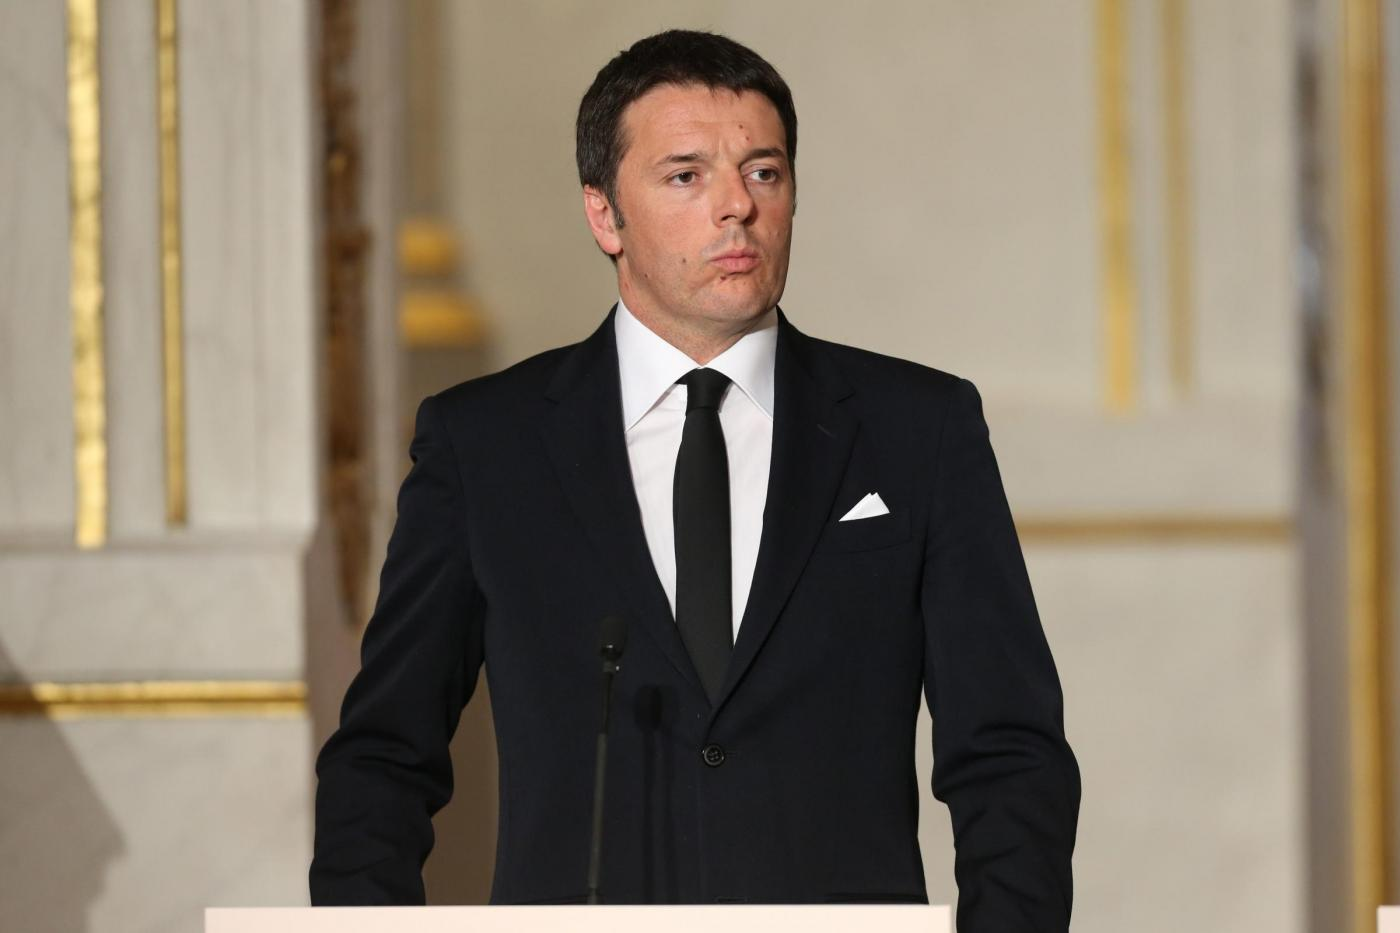 Economic summit french-italian at elysee palace